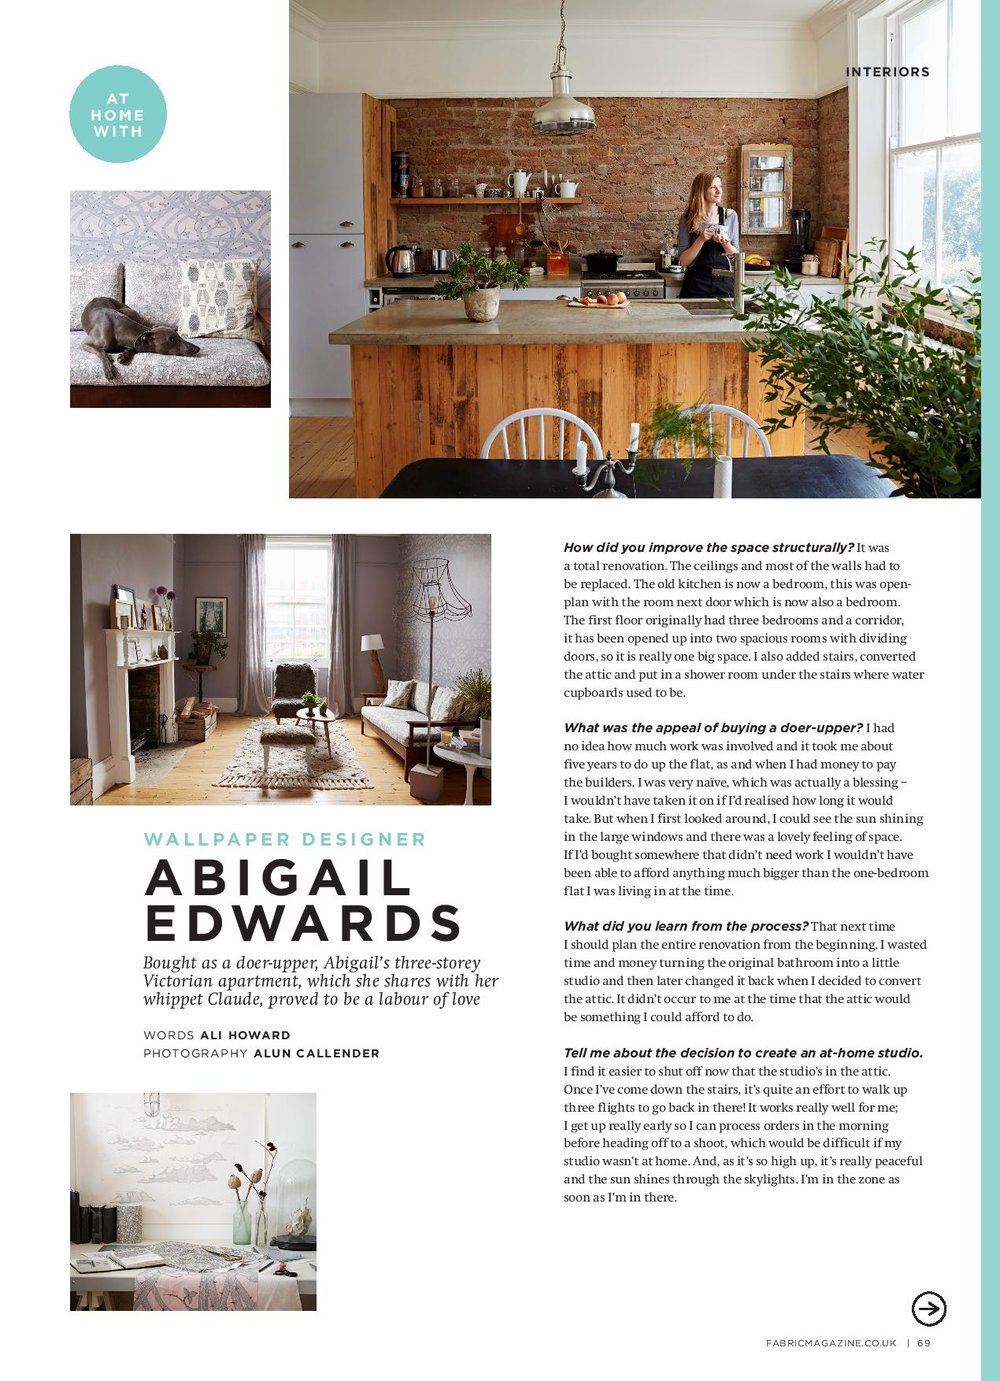 Fabric Magazine Sept issue Abigail Edwards (1).jpg